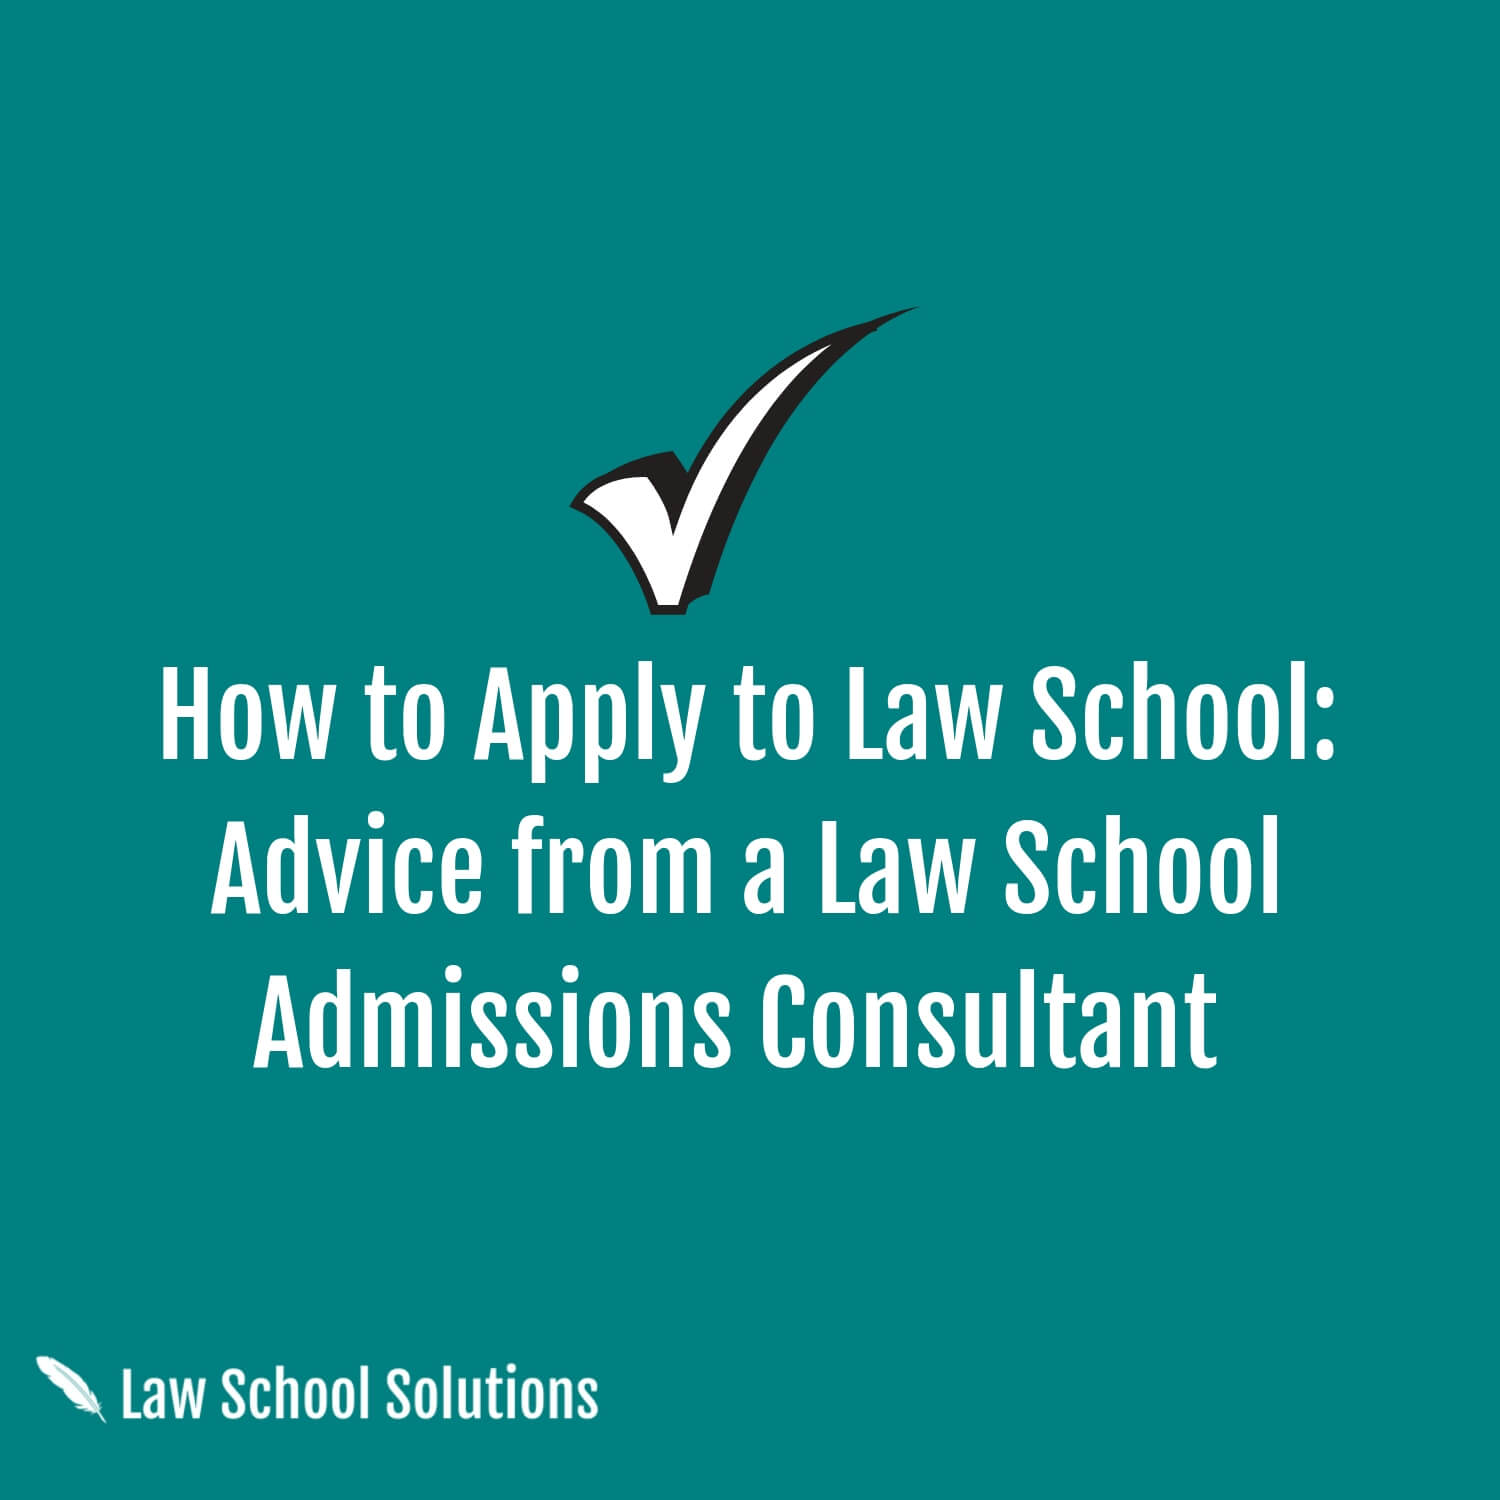 how-to-apply-to-law-school-advice-from-a-law-school-admissions-consultant